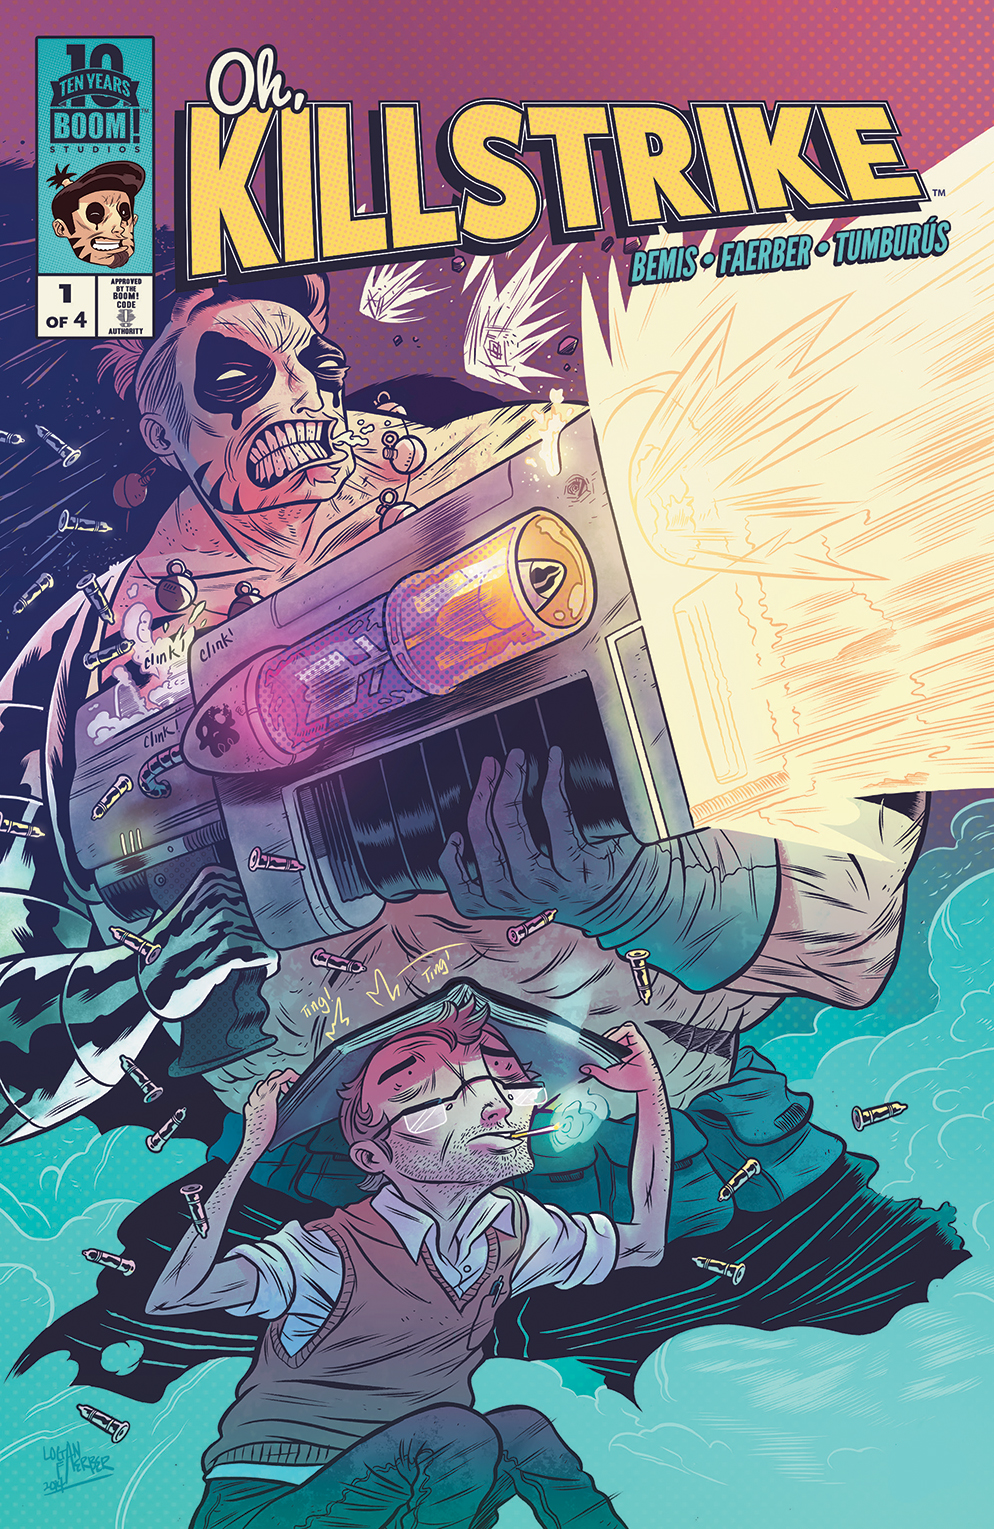 Oh, Killstrike #1 (of 4) Preview